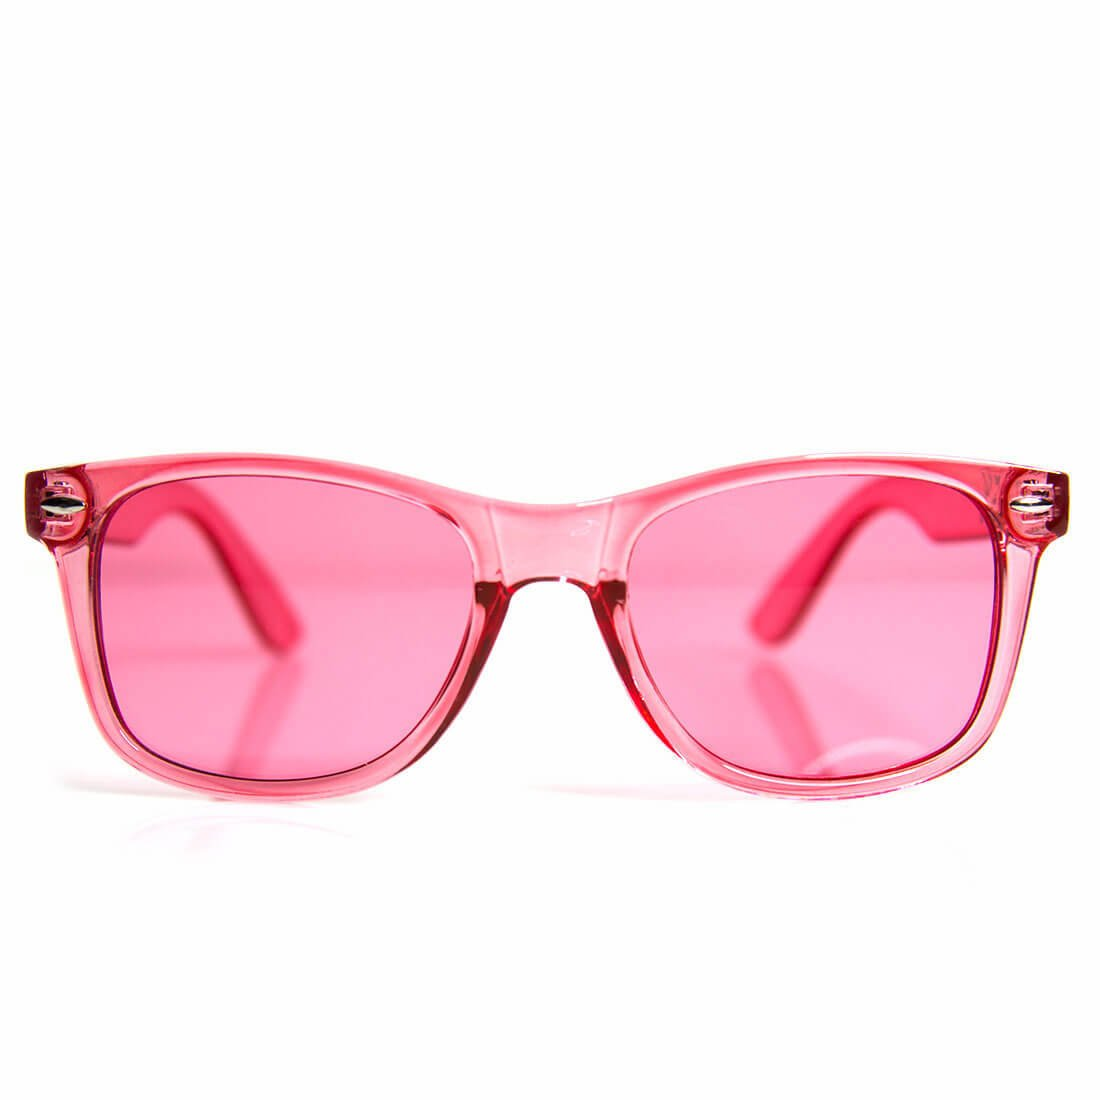 GloFX GloFX Baker-Miller Pink (Rose) Color Therapy Glasses Chakra Glasses Relax Glasses